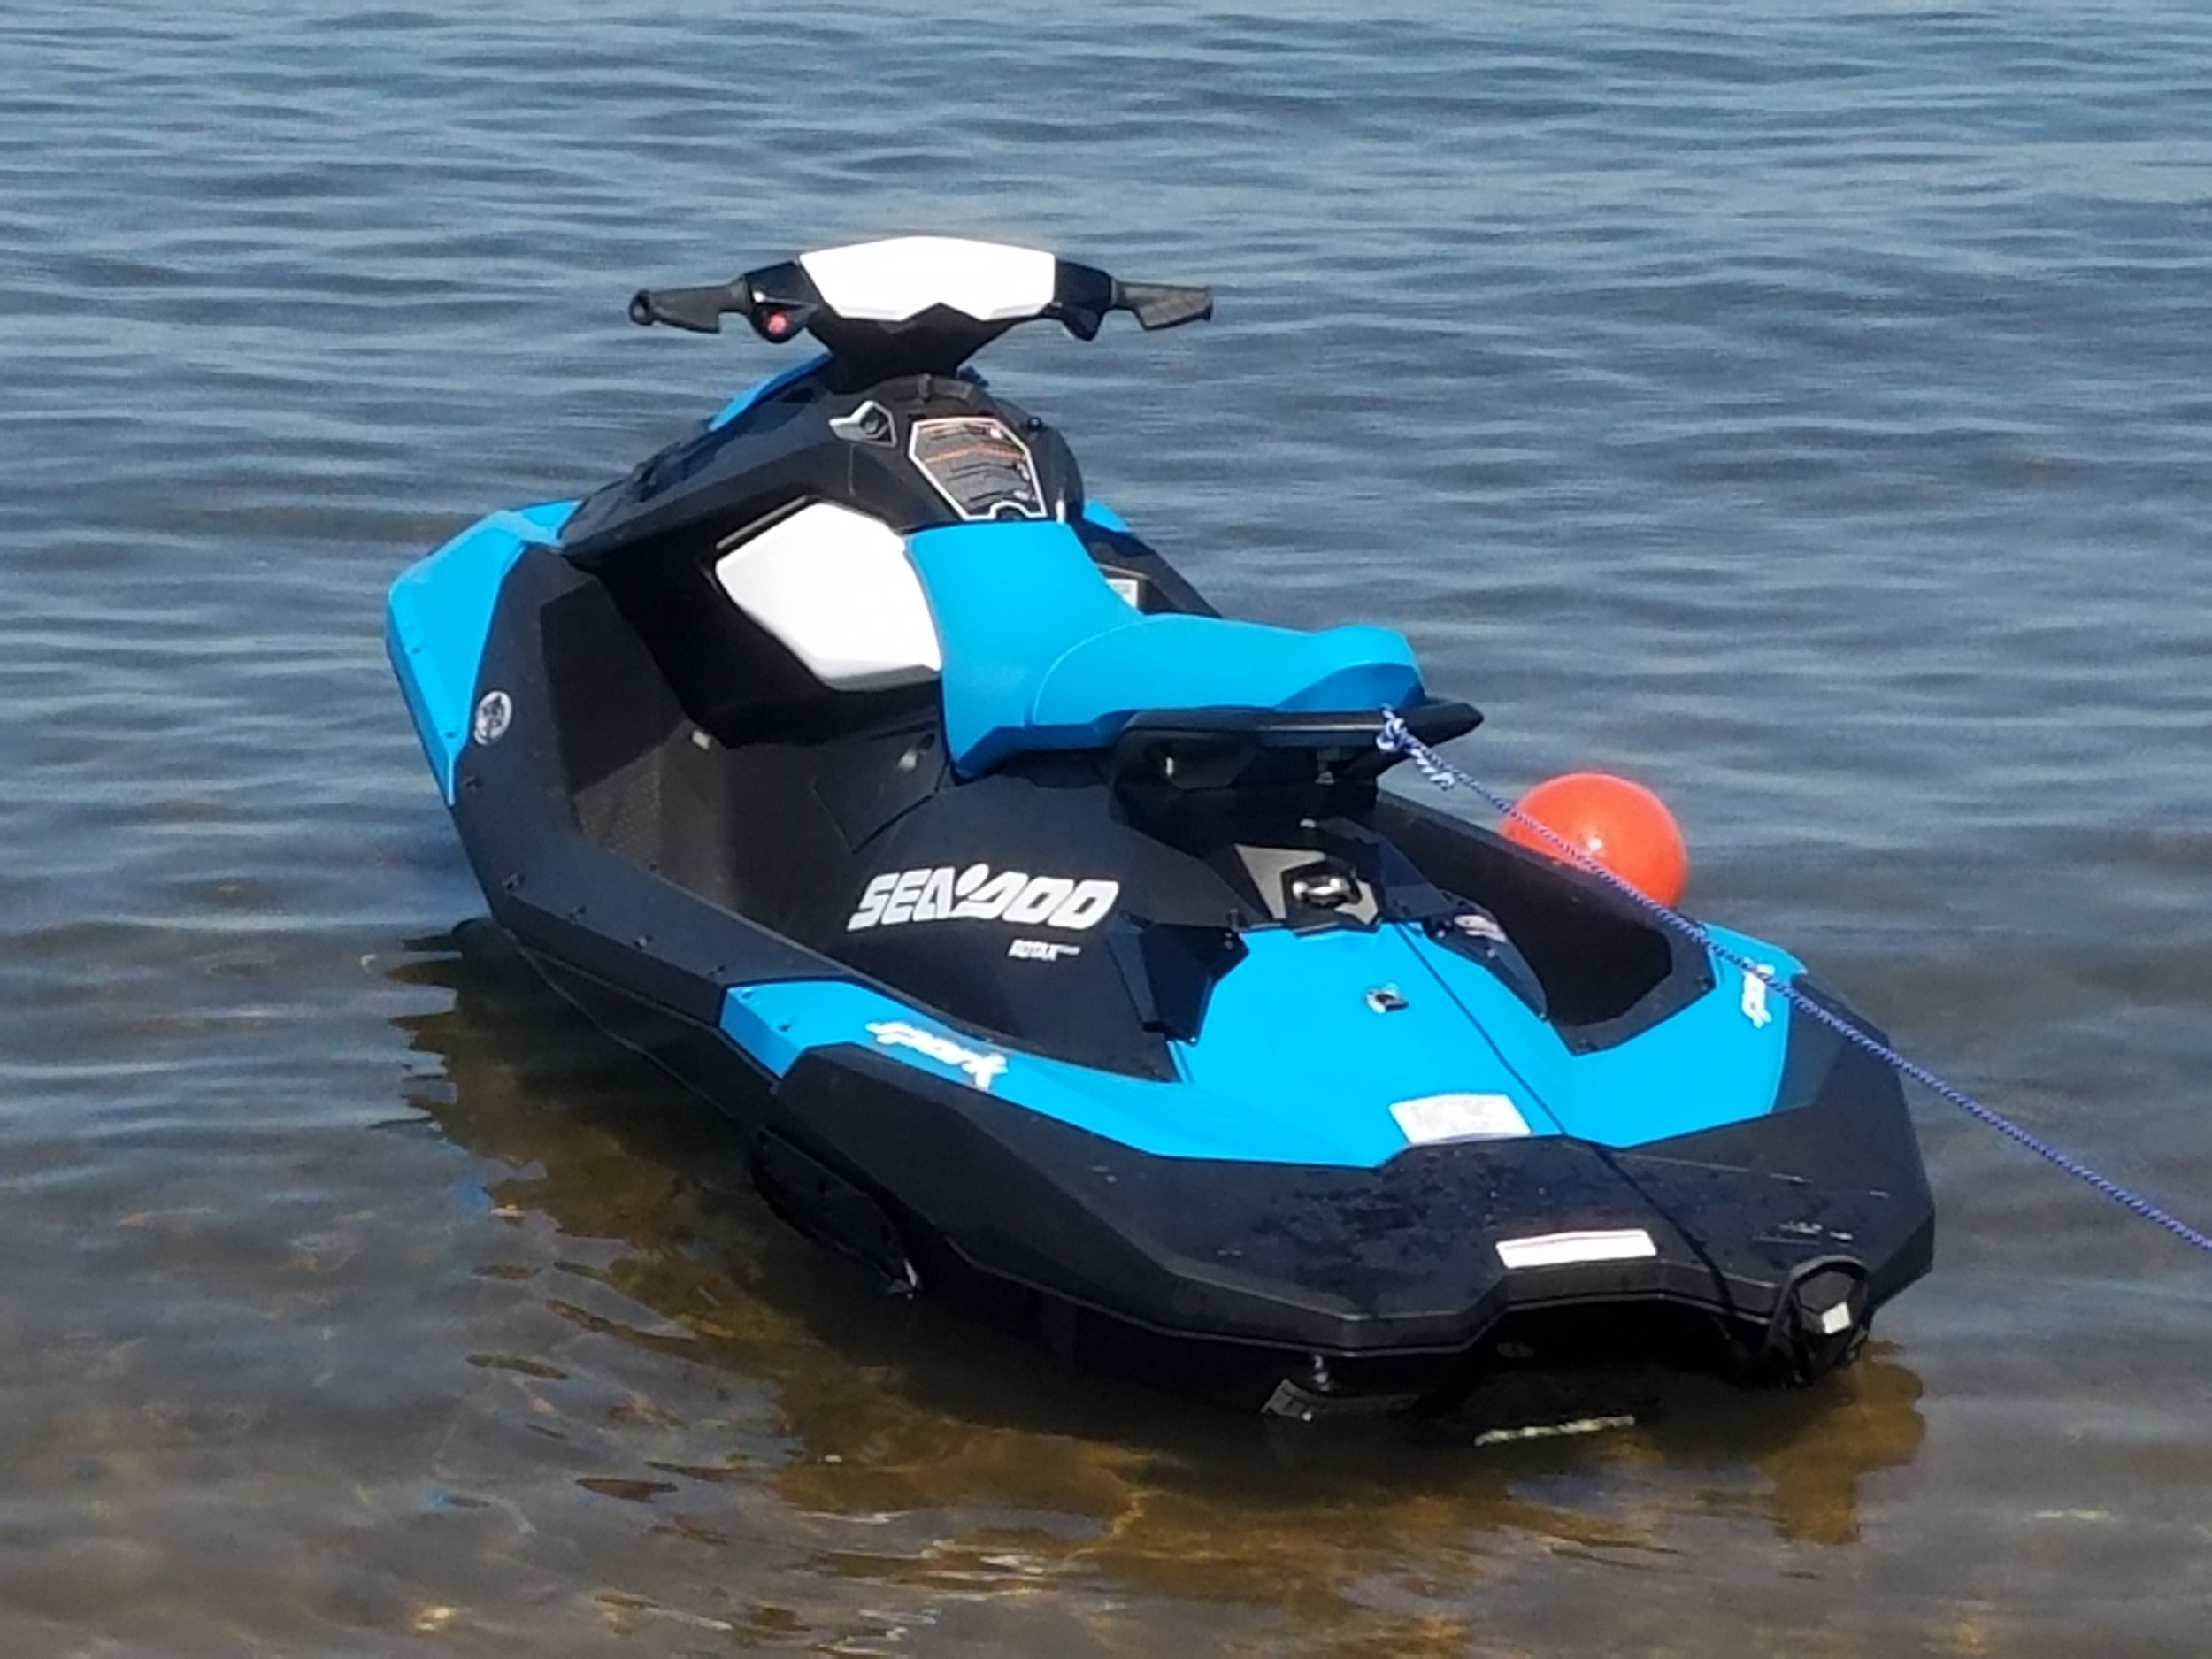 Blue Seadoo Spark 3up. Light wieght the Seadoo Spark is quick nimble and fun.